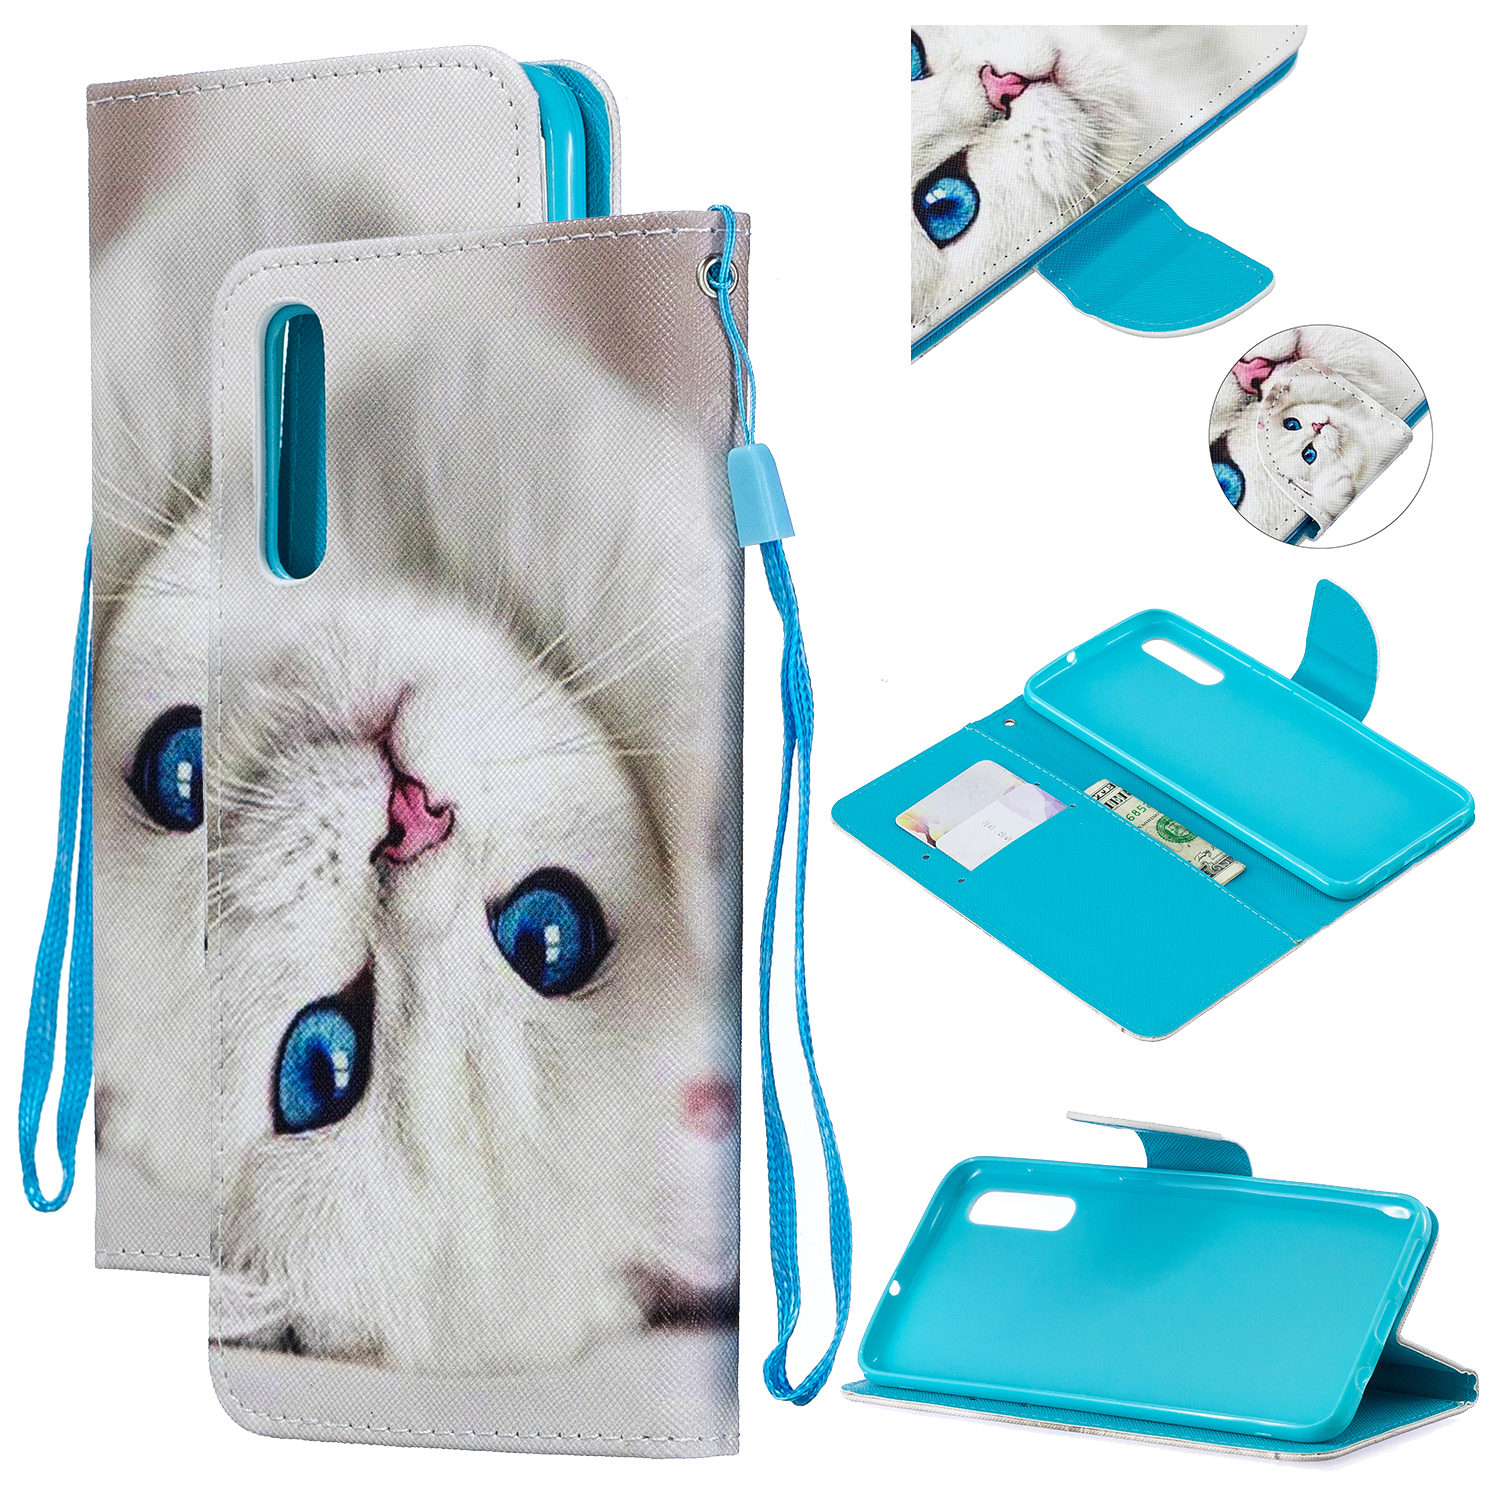 For Samsung A50/A70 Smartphone Case Overall Protective Phone Shell Lovely PU Leather Cellphone Cover with Card Slots  Blue eyes cat